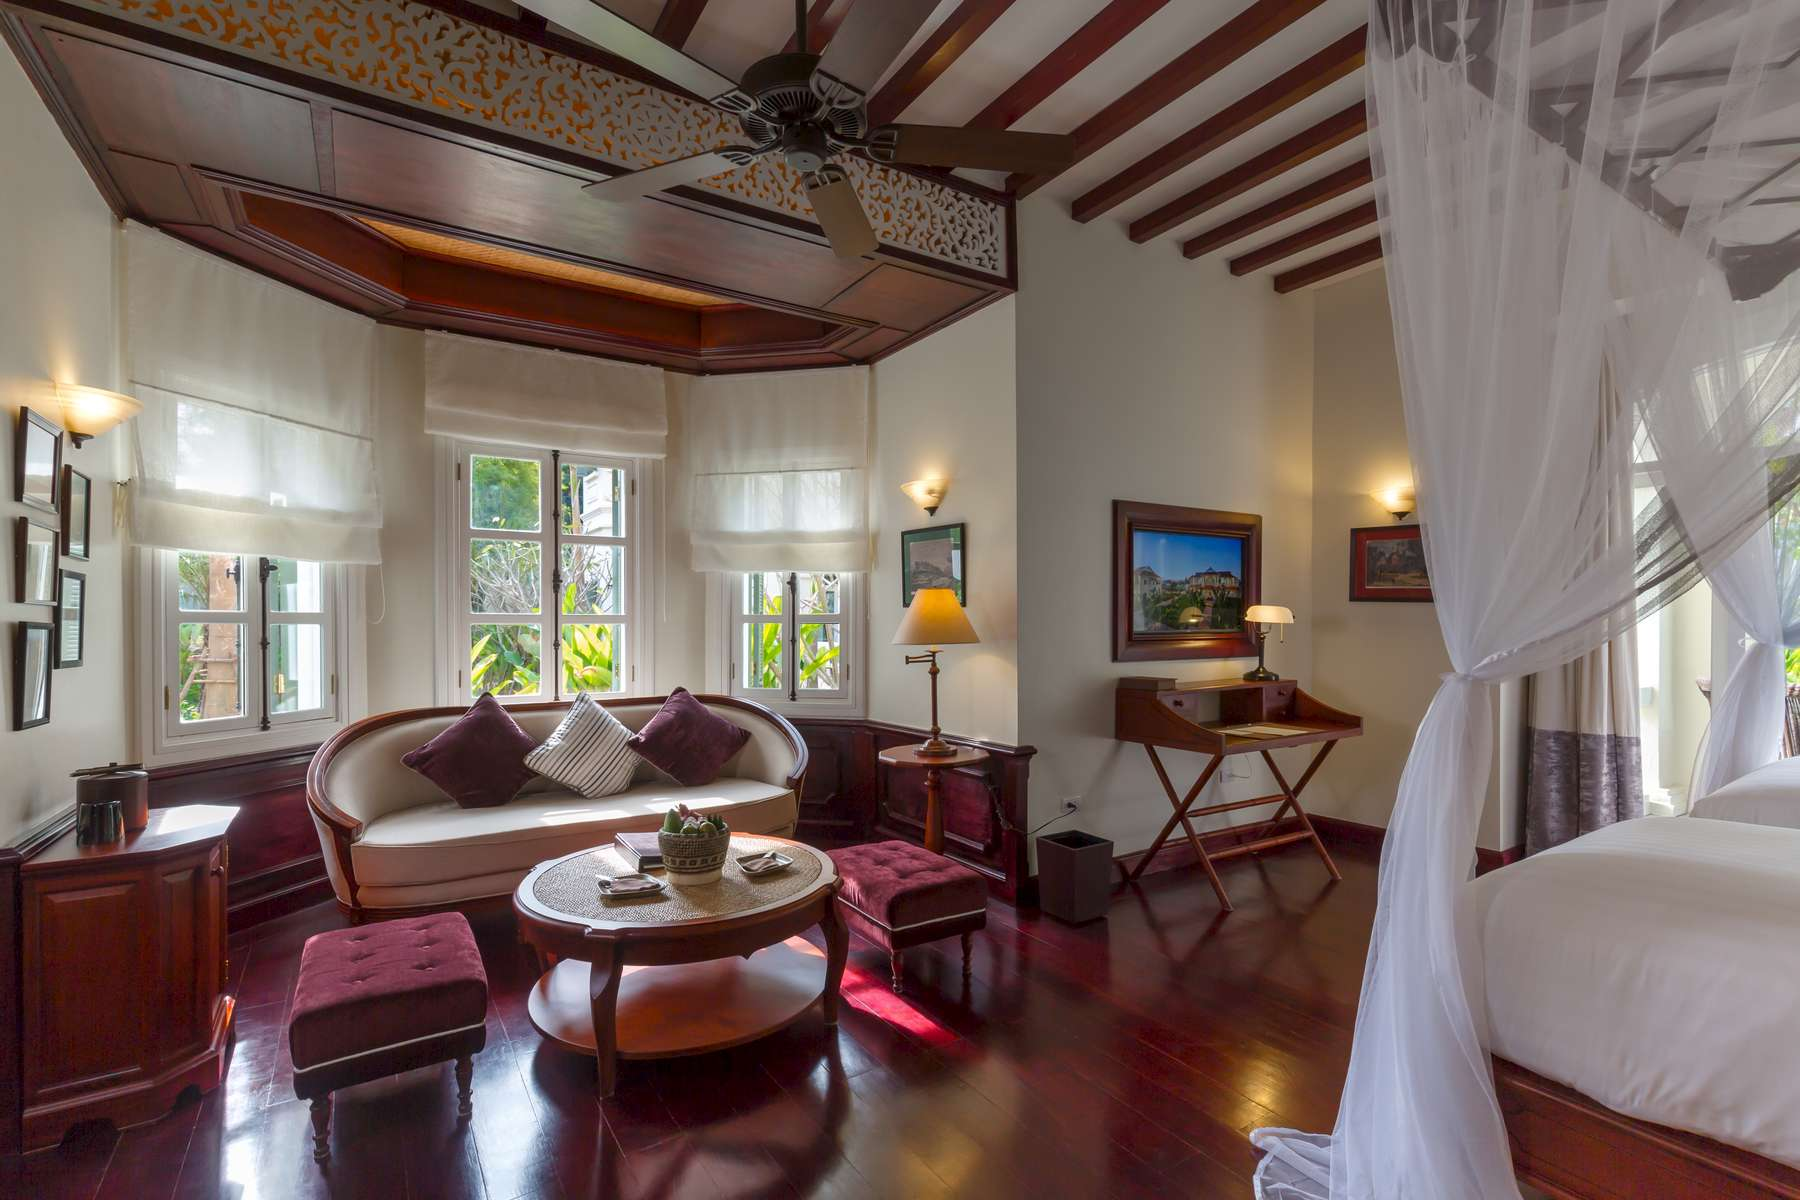 Luang_Say_Residence_Laos_Luang_Prabang_Photo_by_Cyril_Eberle_CEB_5636_web